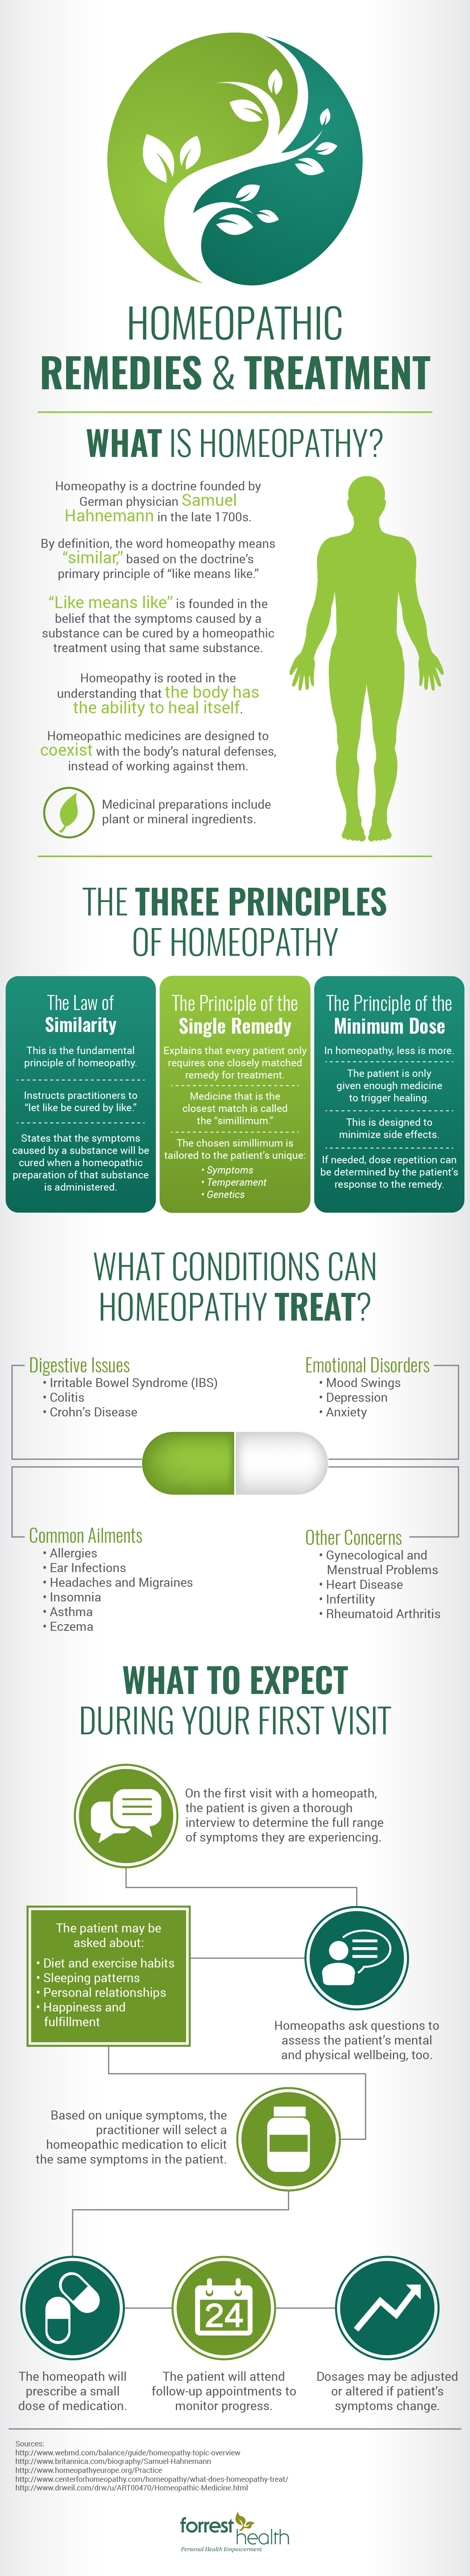 Homeopathic Remedies & Treatment